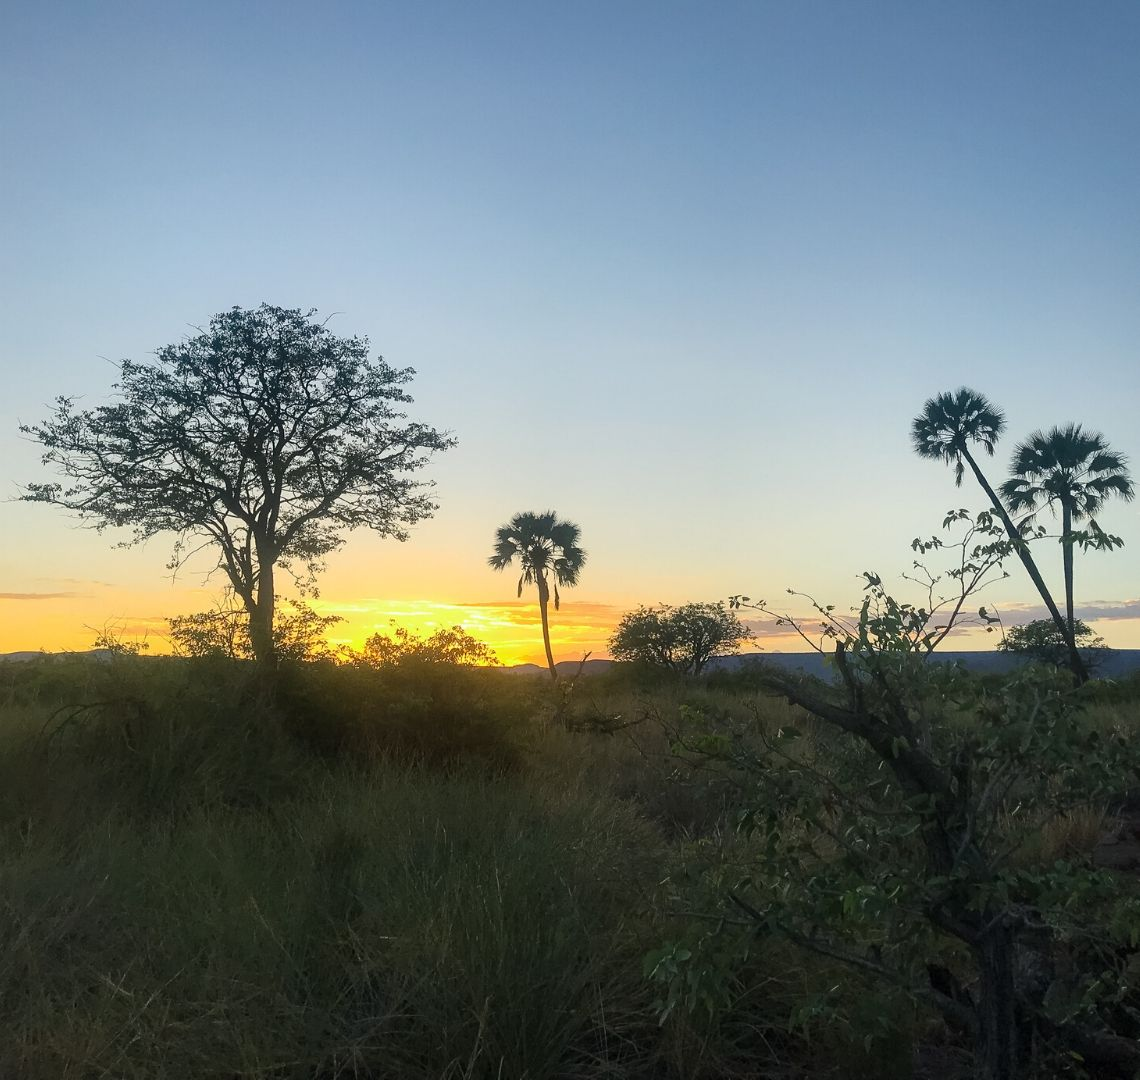 Best travel journals for kids - sunset in Namibia with trees silhouetted against the sky